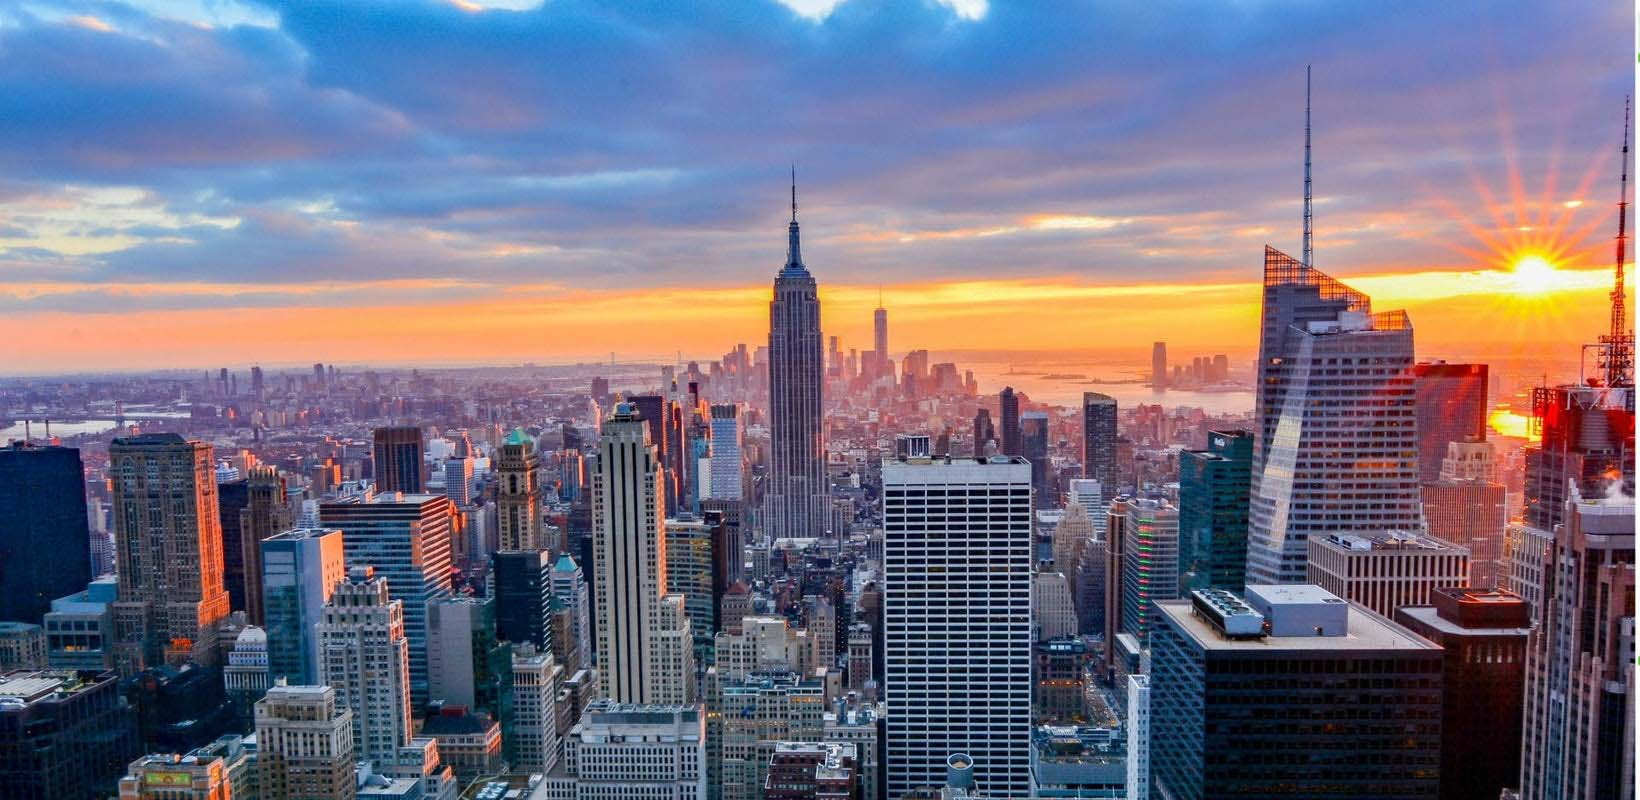 New York CityPASS: Must-See Attractions